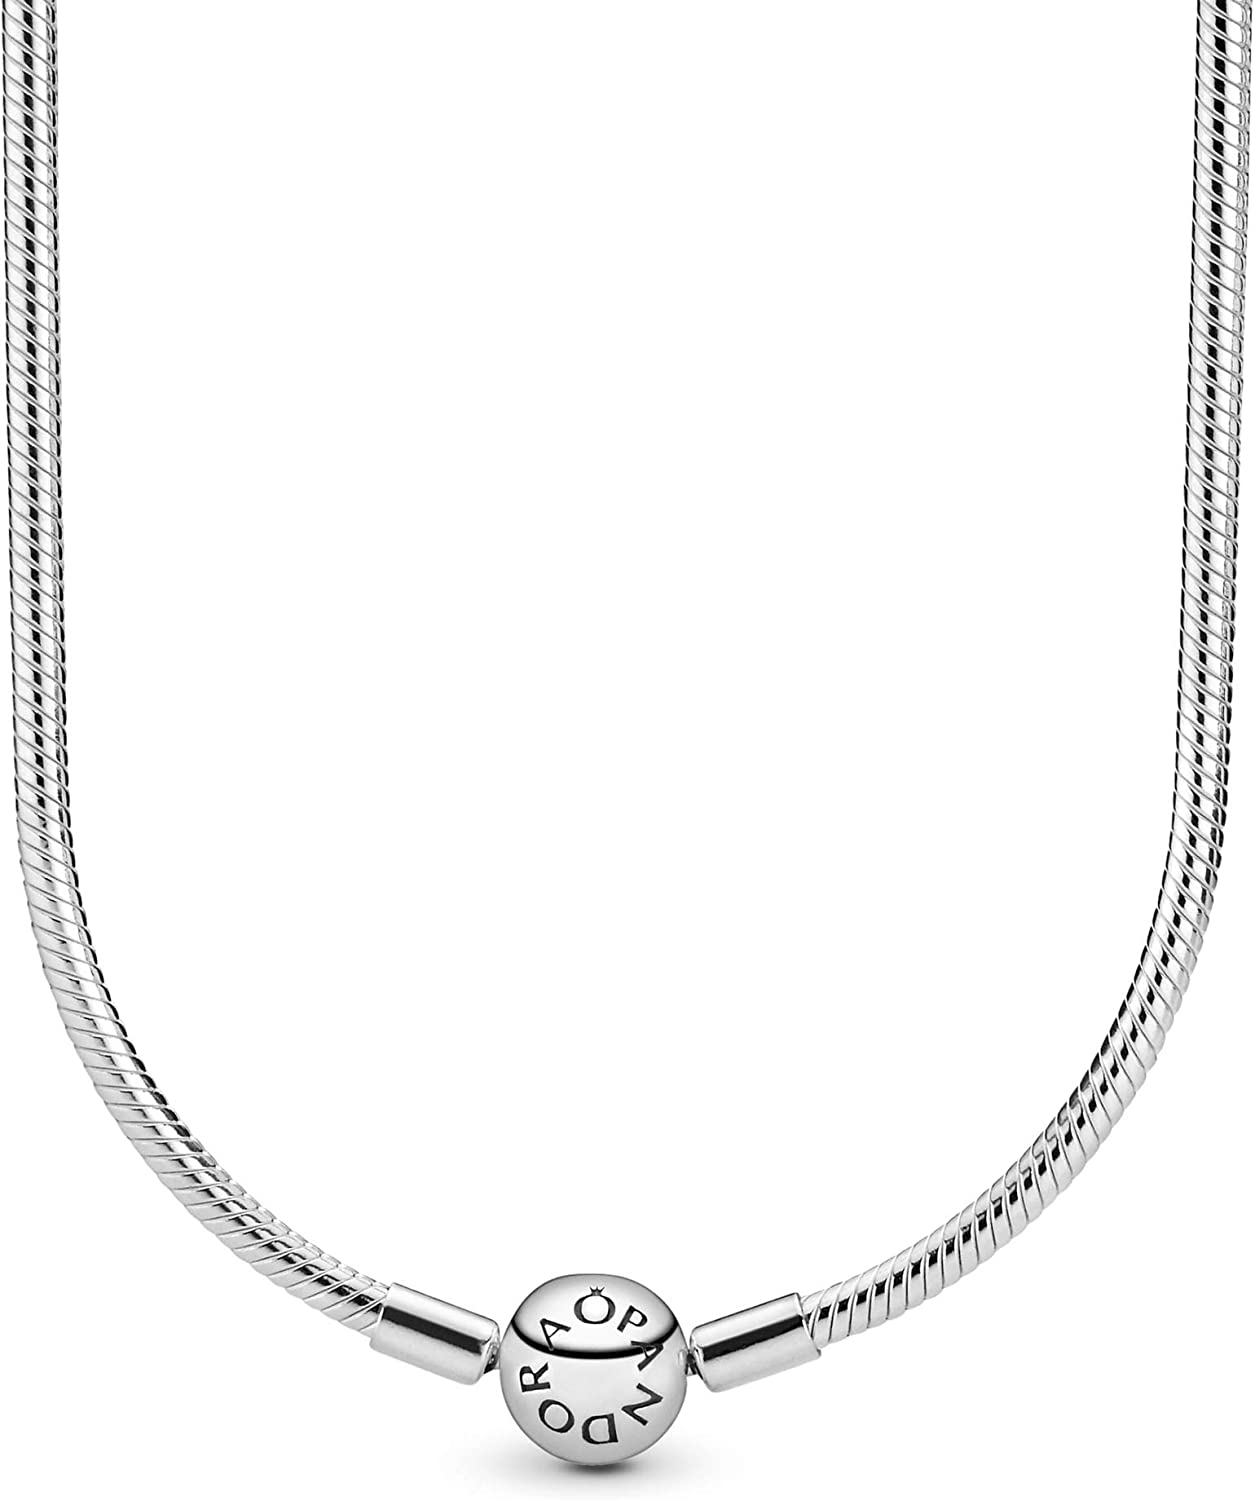 Pandora Jewelry - Moments Snake Chain Charm Necklace for Women...